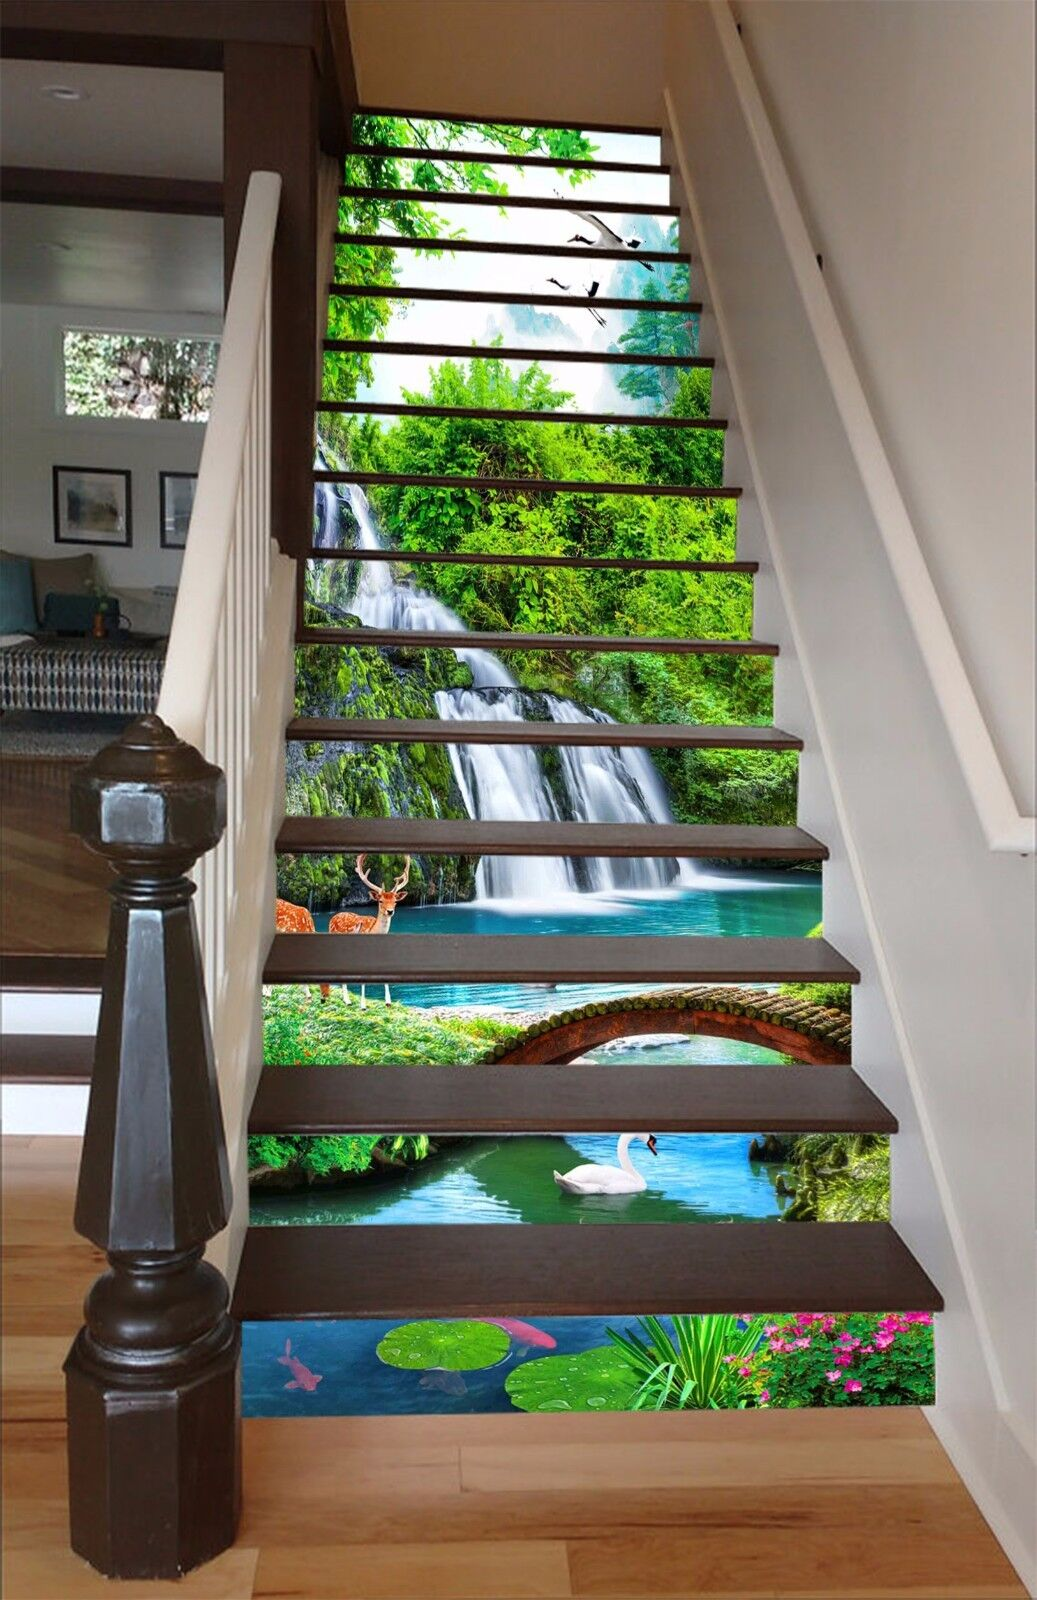 3D Forest Deer 5049 Stair Risers Decoration Photo Mural Vinyl Decal Wallpaper AU